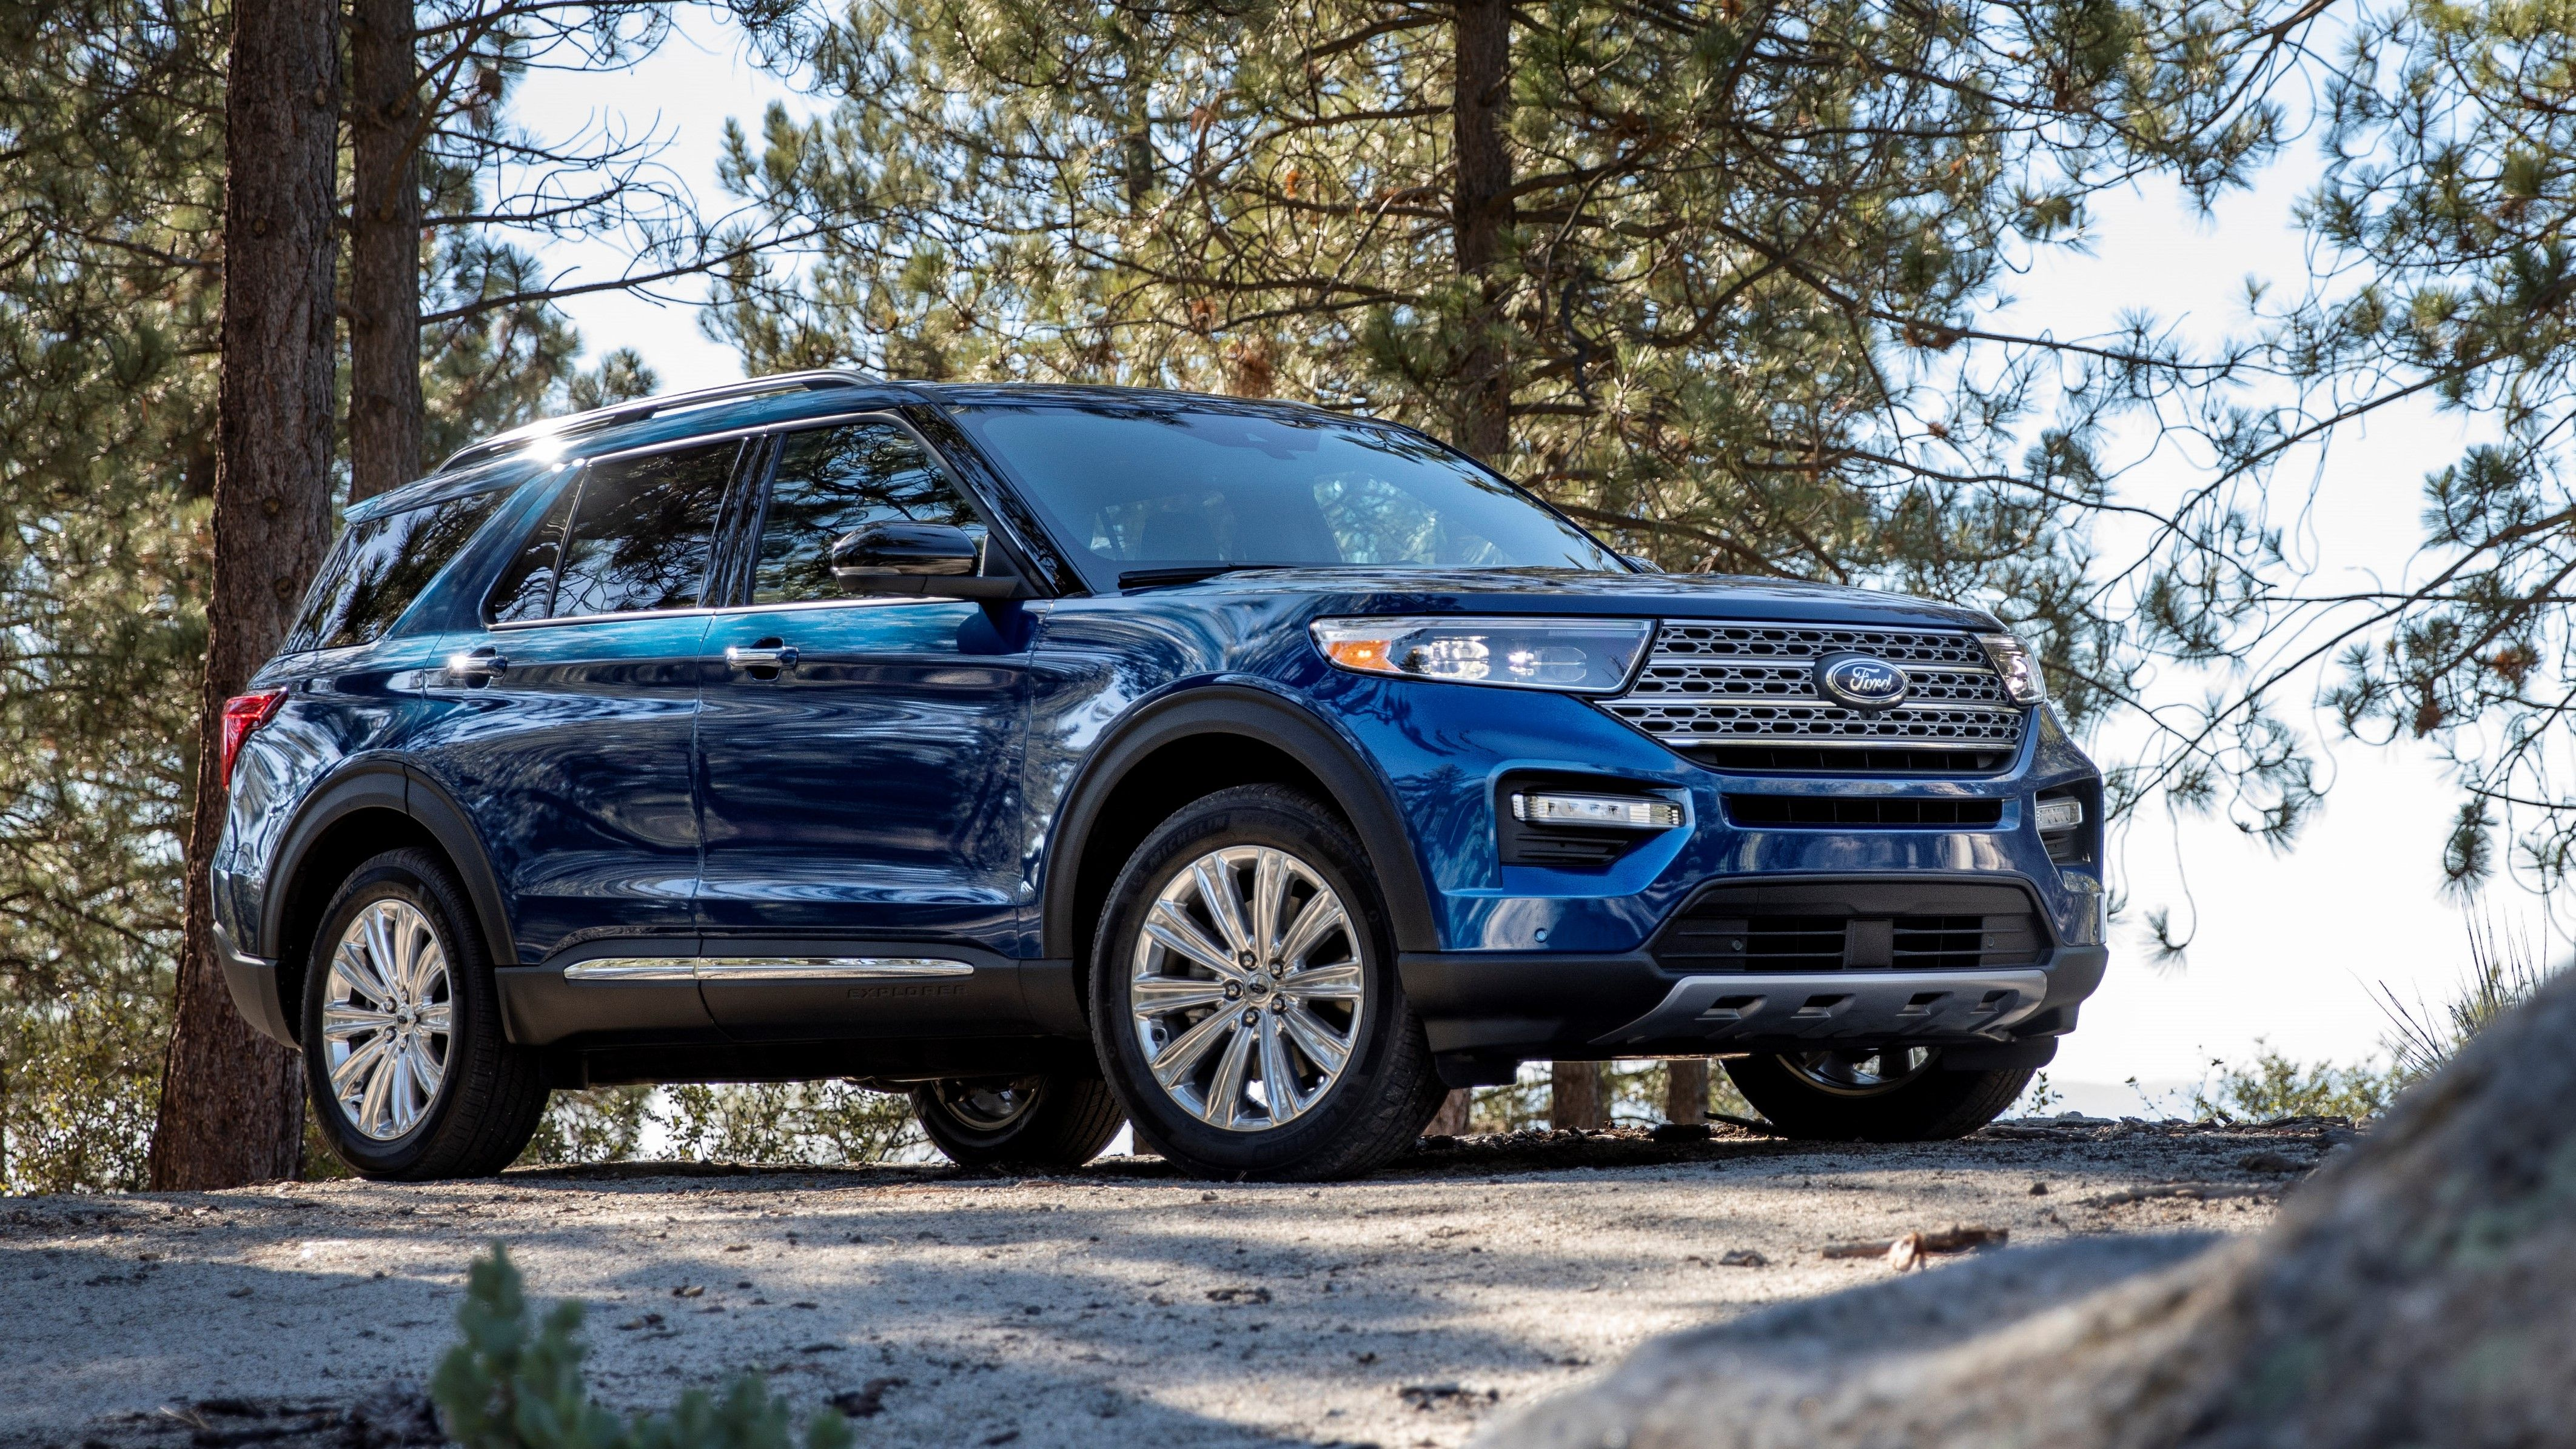 A New Calm Setting On The 2020 Ford Explorer Is A Peaceful Addition In 2020 Ford Explorer 2020 Ford Explorer Ford Explorer Hybrid